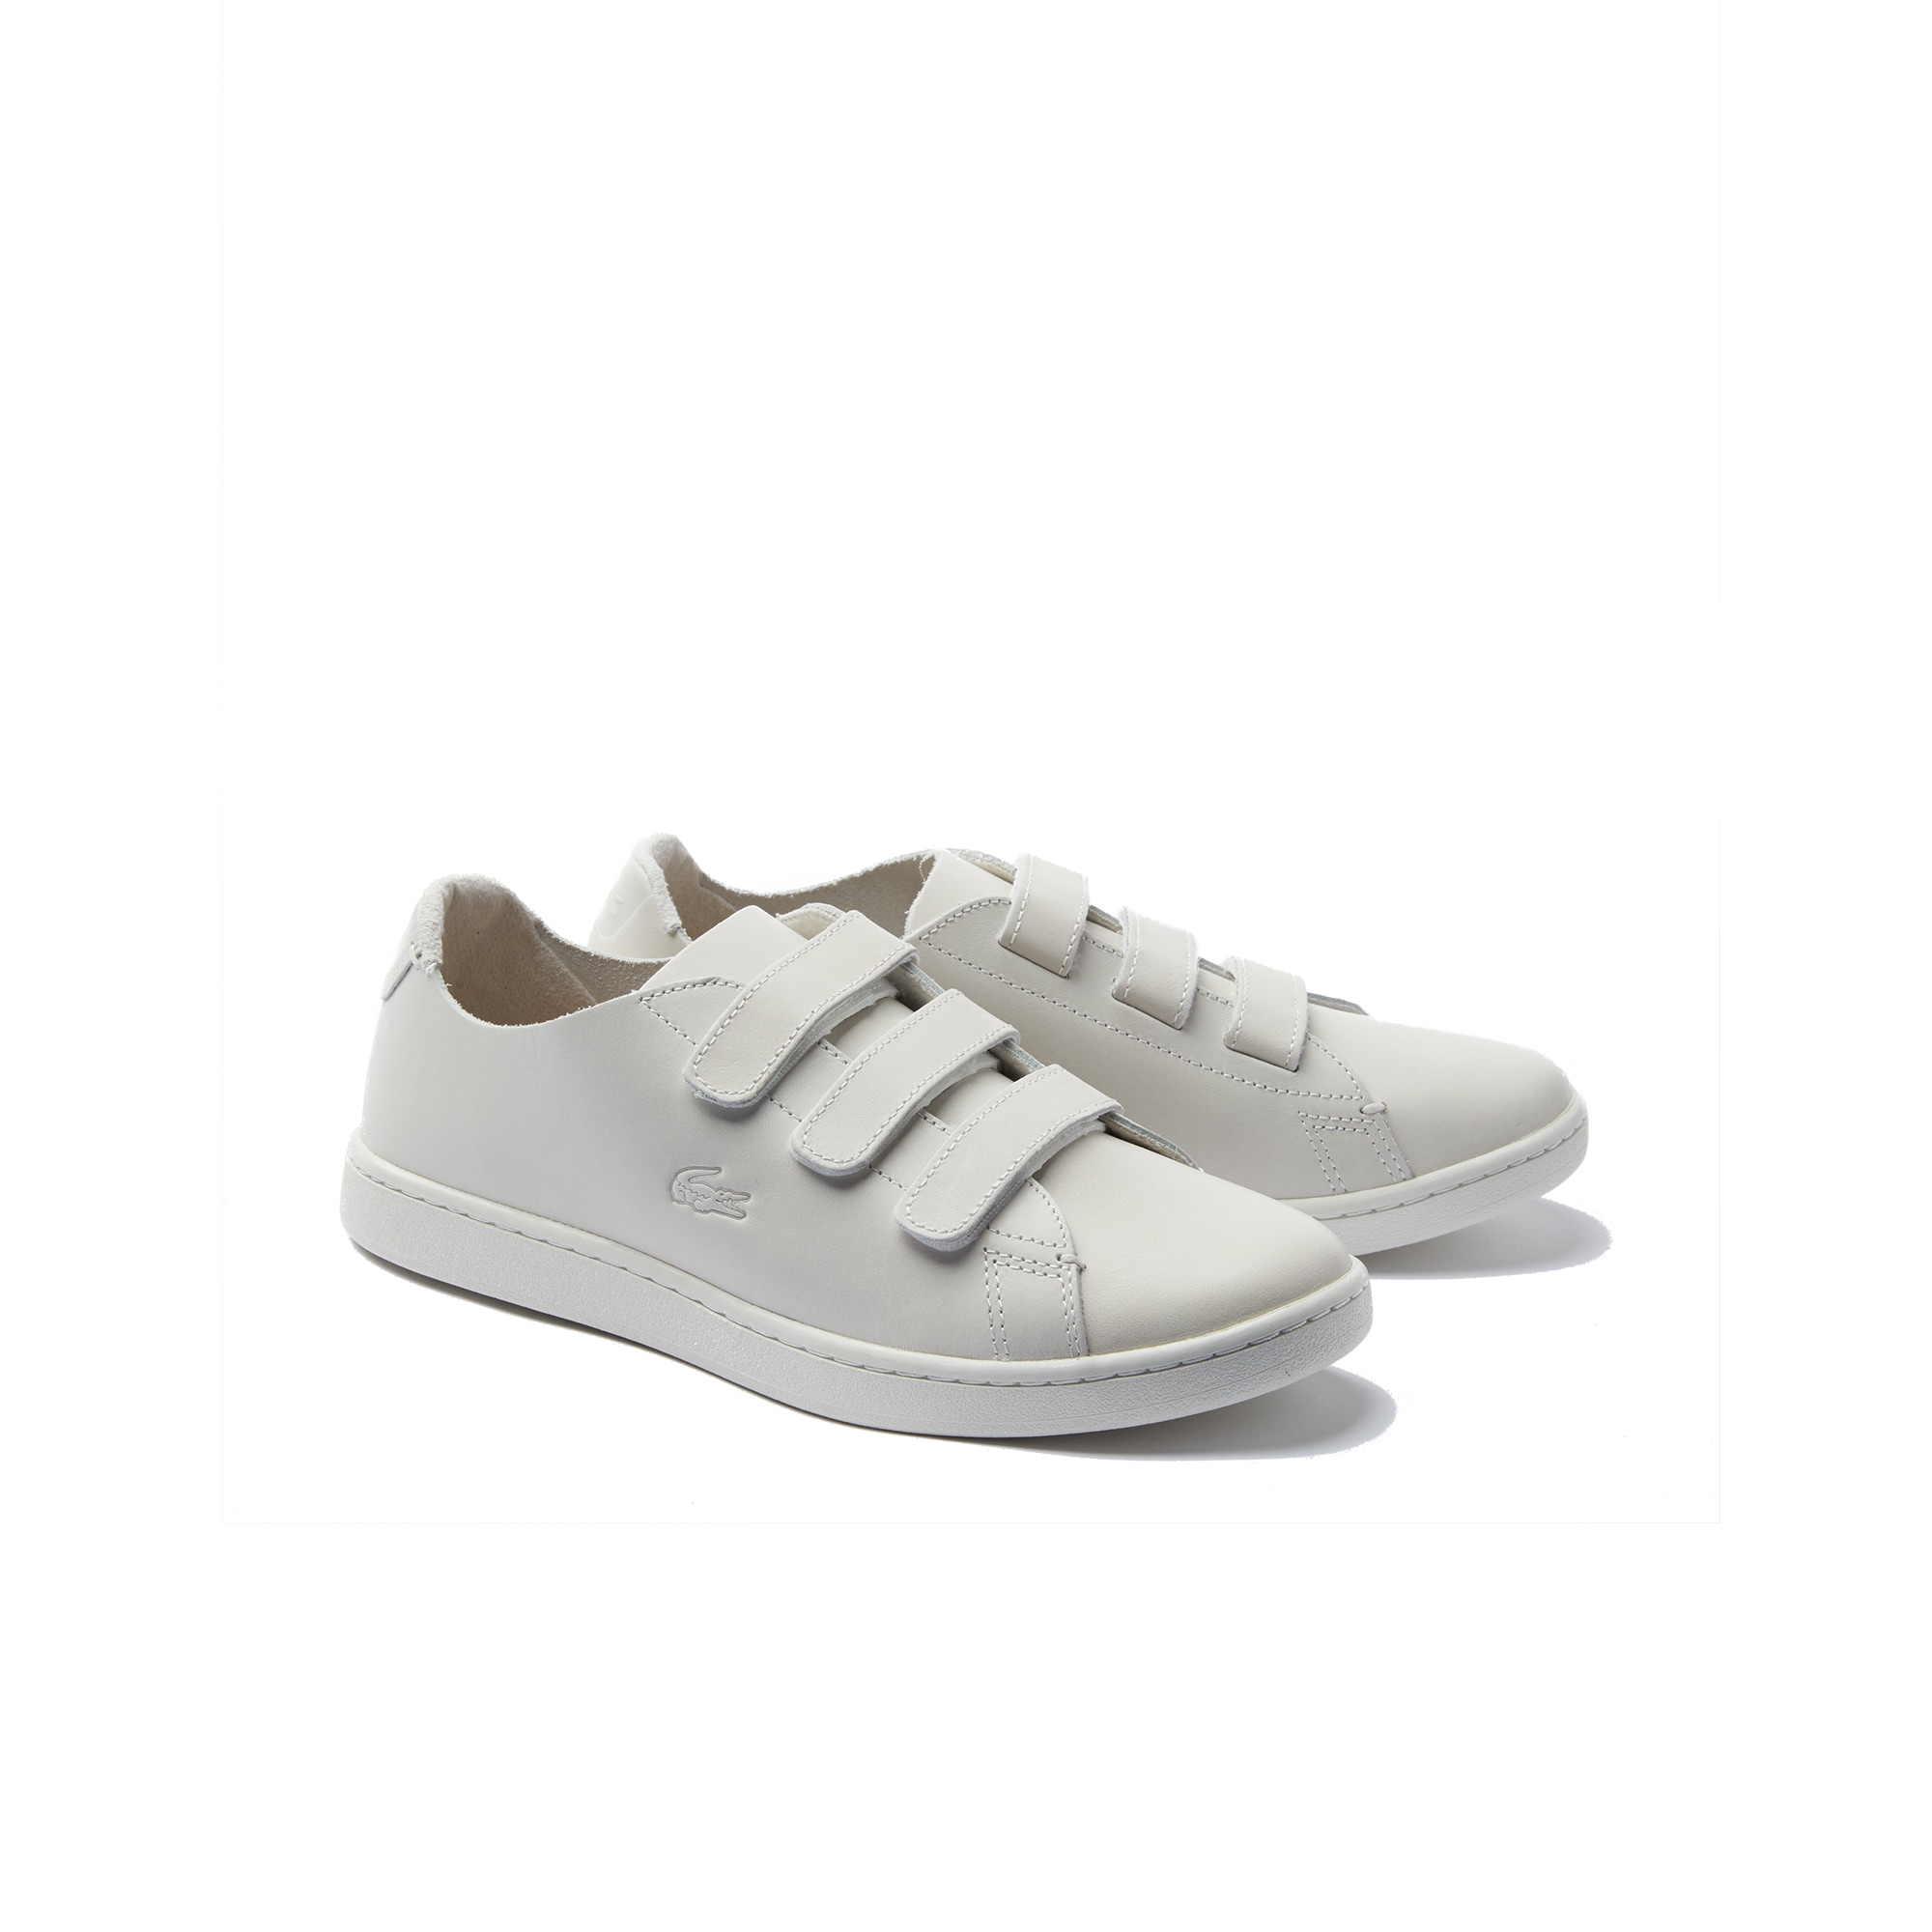 Lacoste WOMEN'S CARNABY STRAP LEATHER SNEAKERS uXfVdT6elc